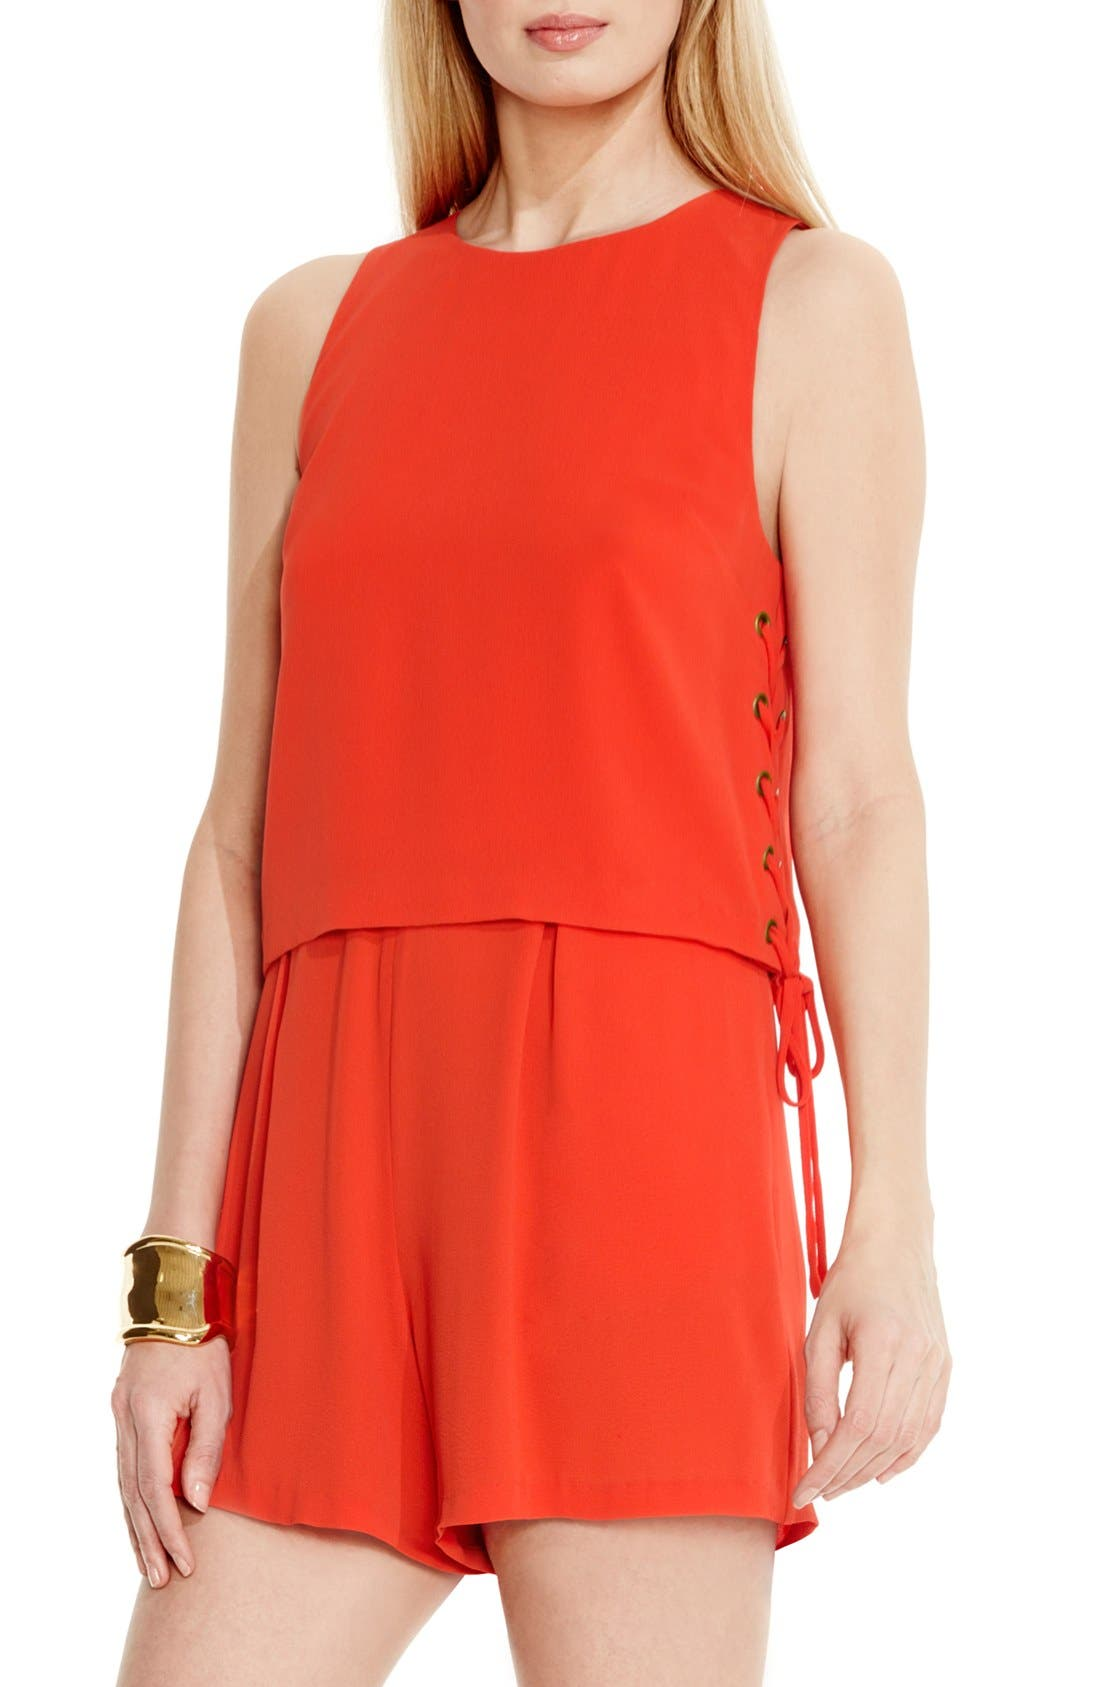 Alternate Image 1 Selected - Vince Camuto Lace-Up Detail Sleeveless Romper